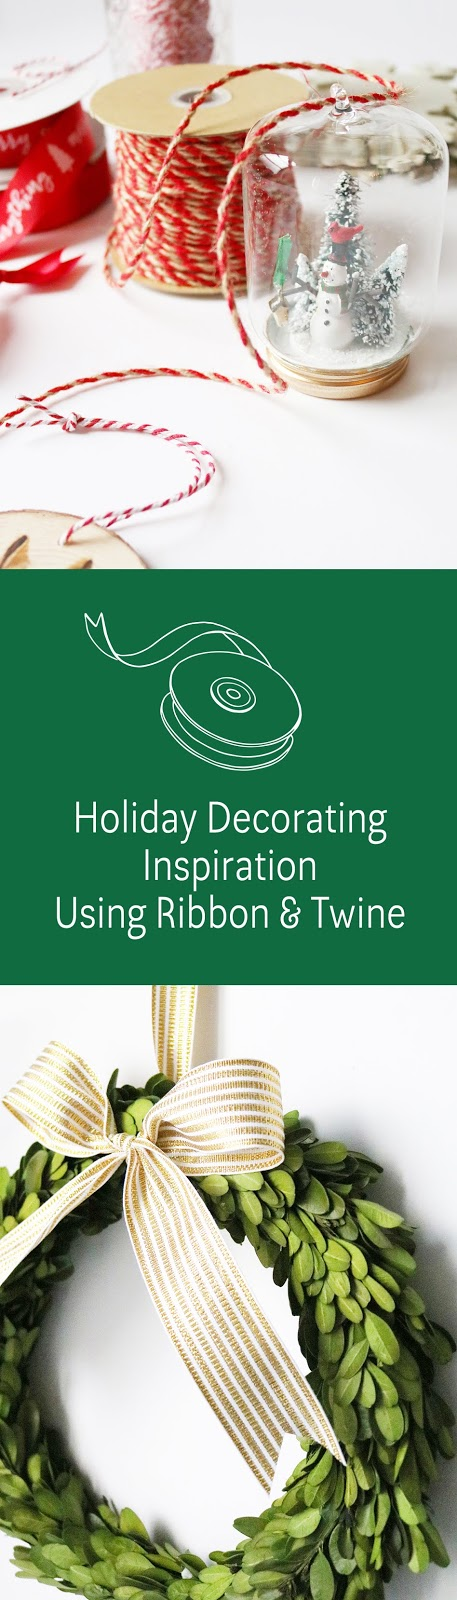 holiday decorating inspiration using ribbons and twine | creativebag.com